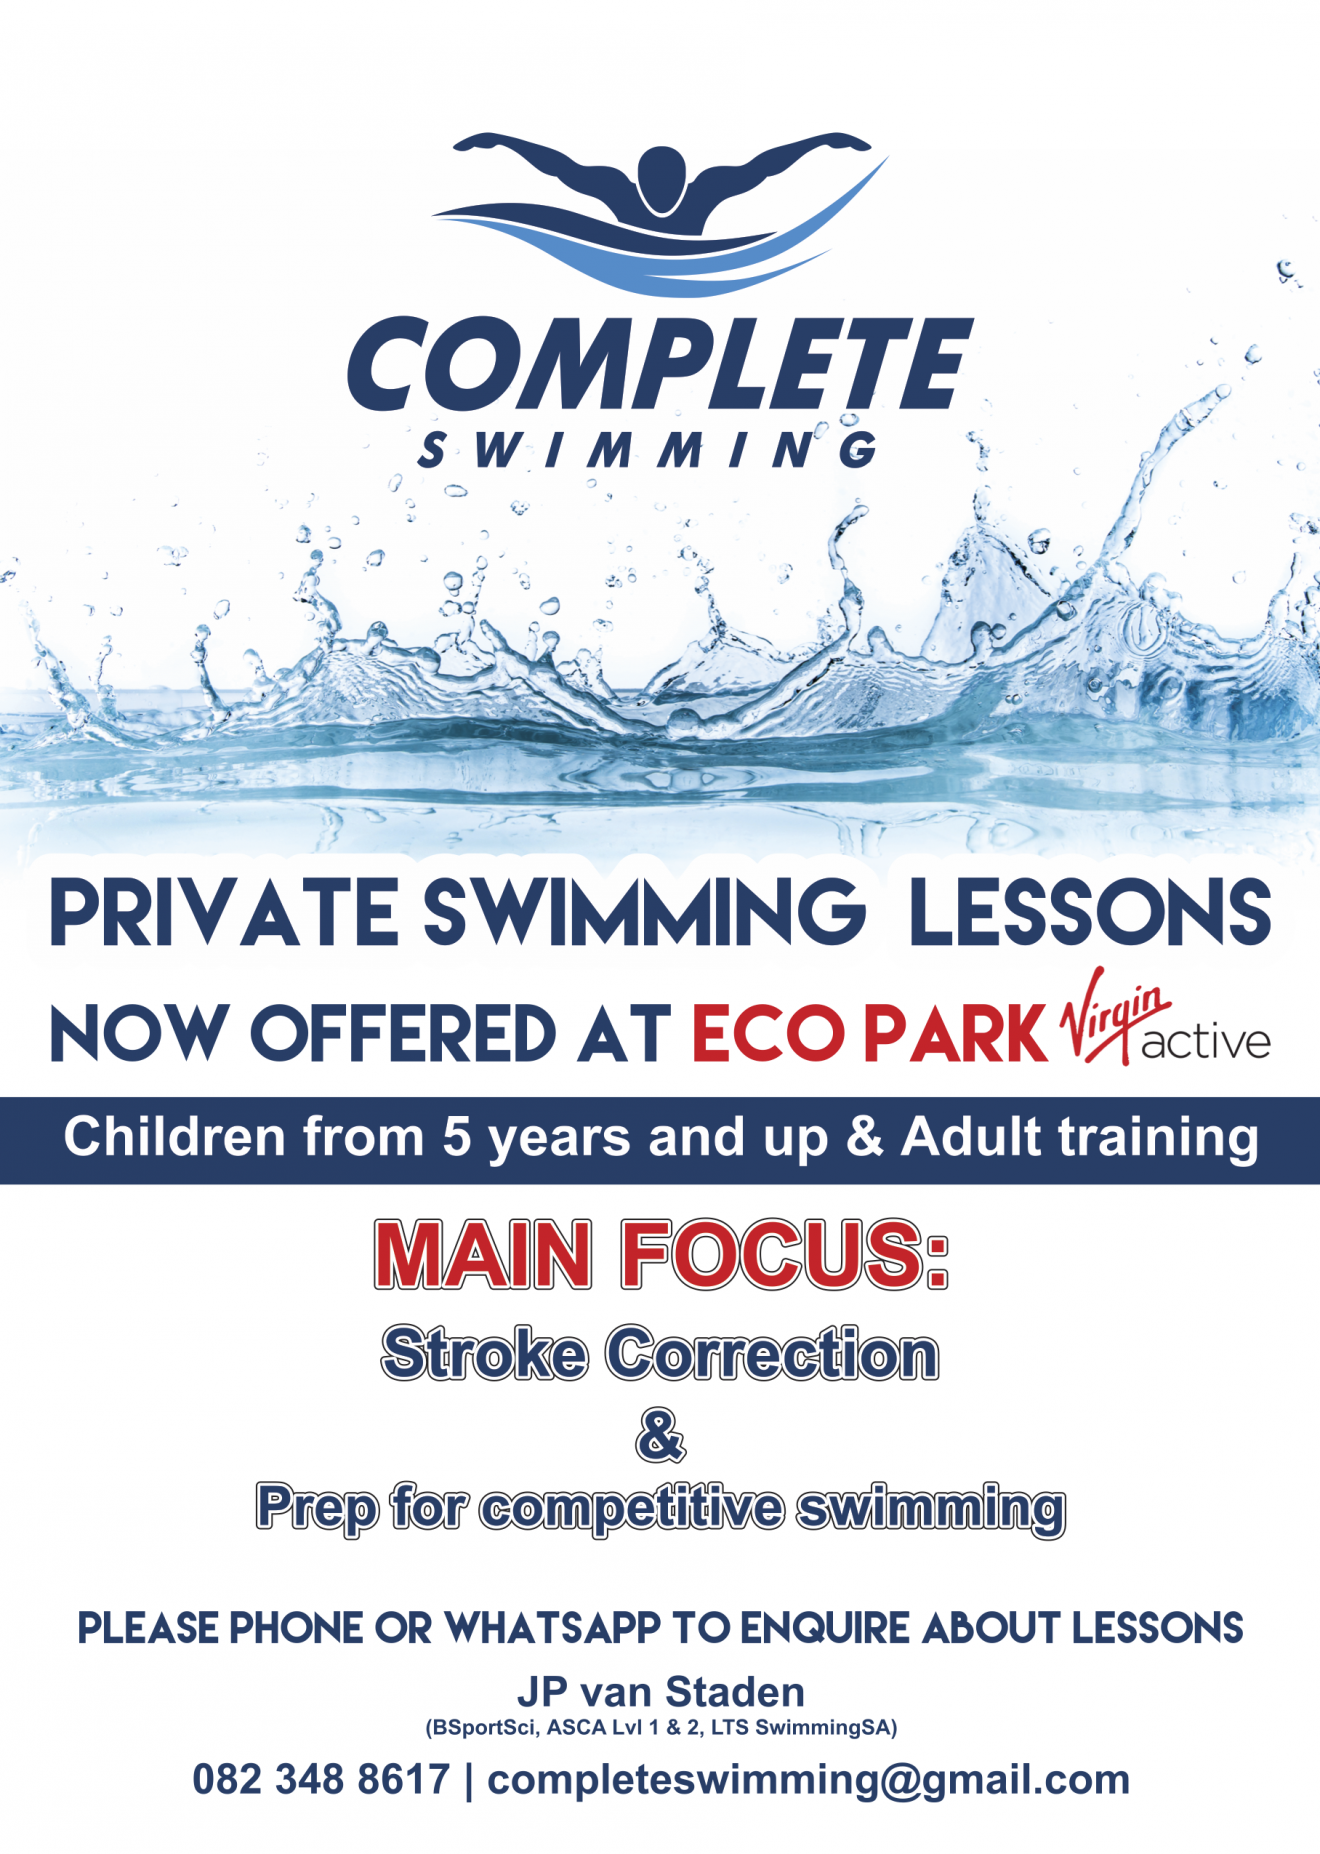 Complete Swimming flyer